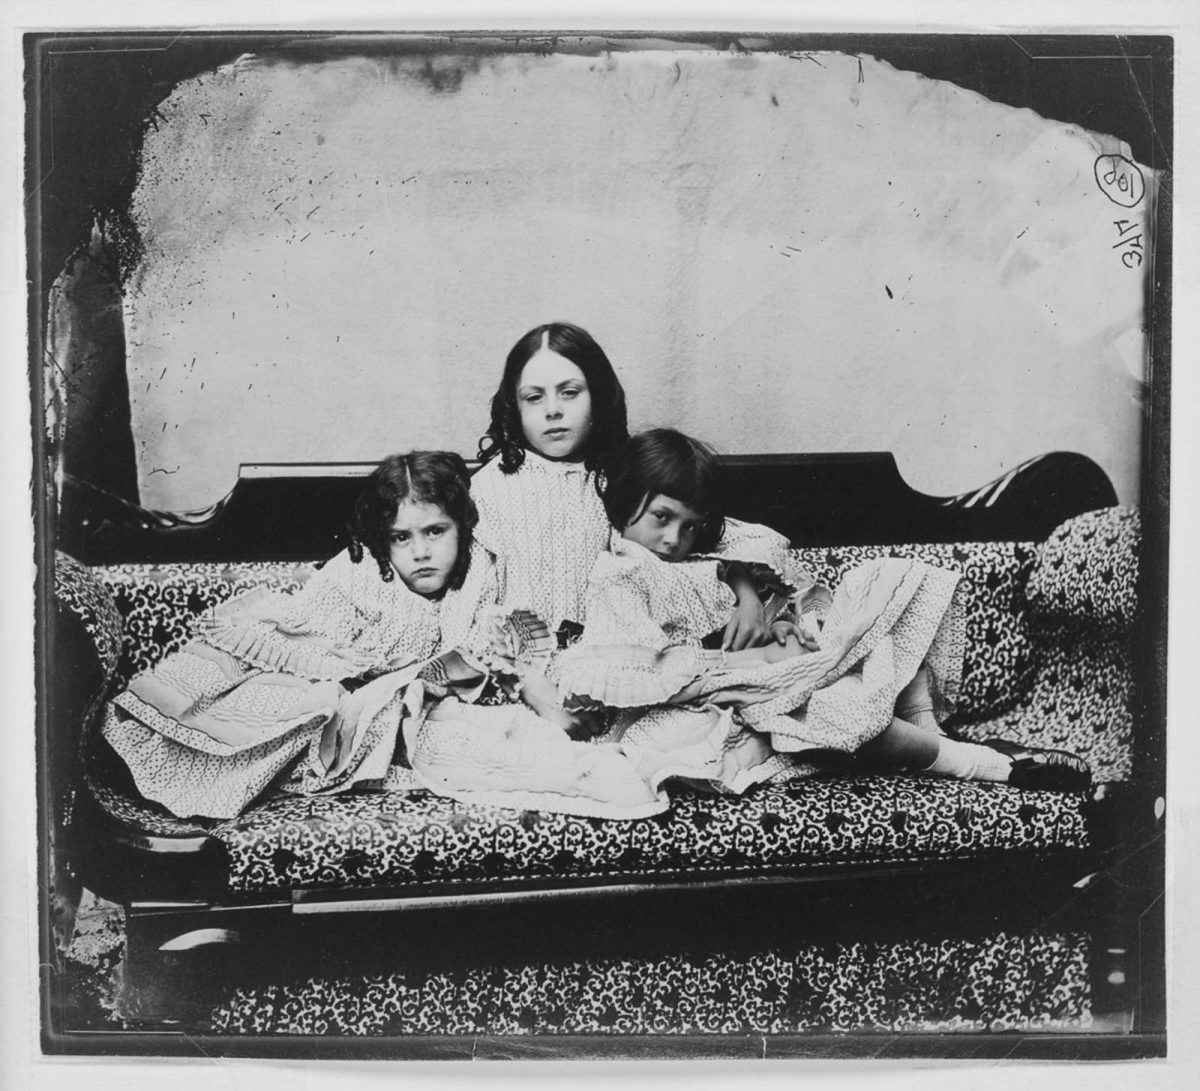 Portraits of Alice Liddell, the Original Alice in Wonderland, Taken by Lewis Carroll and Julia Margaret Cameron